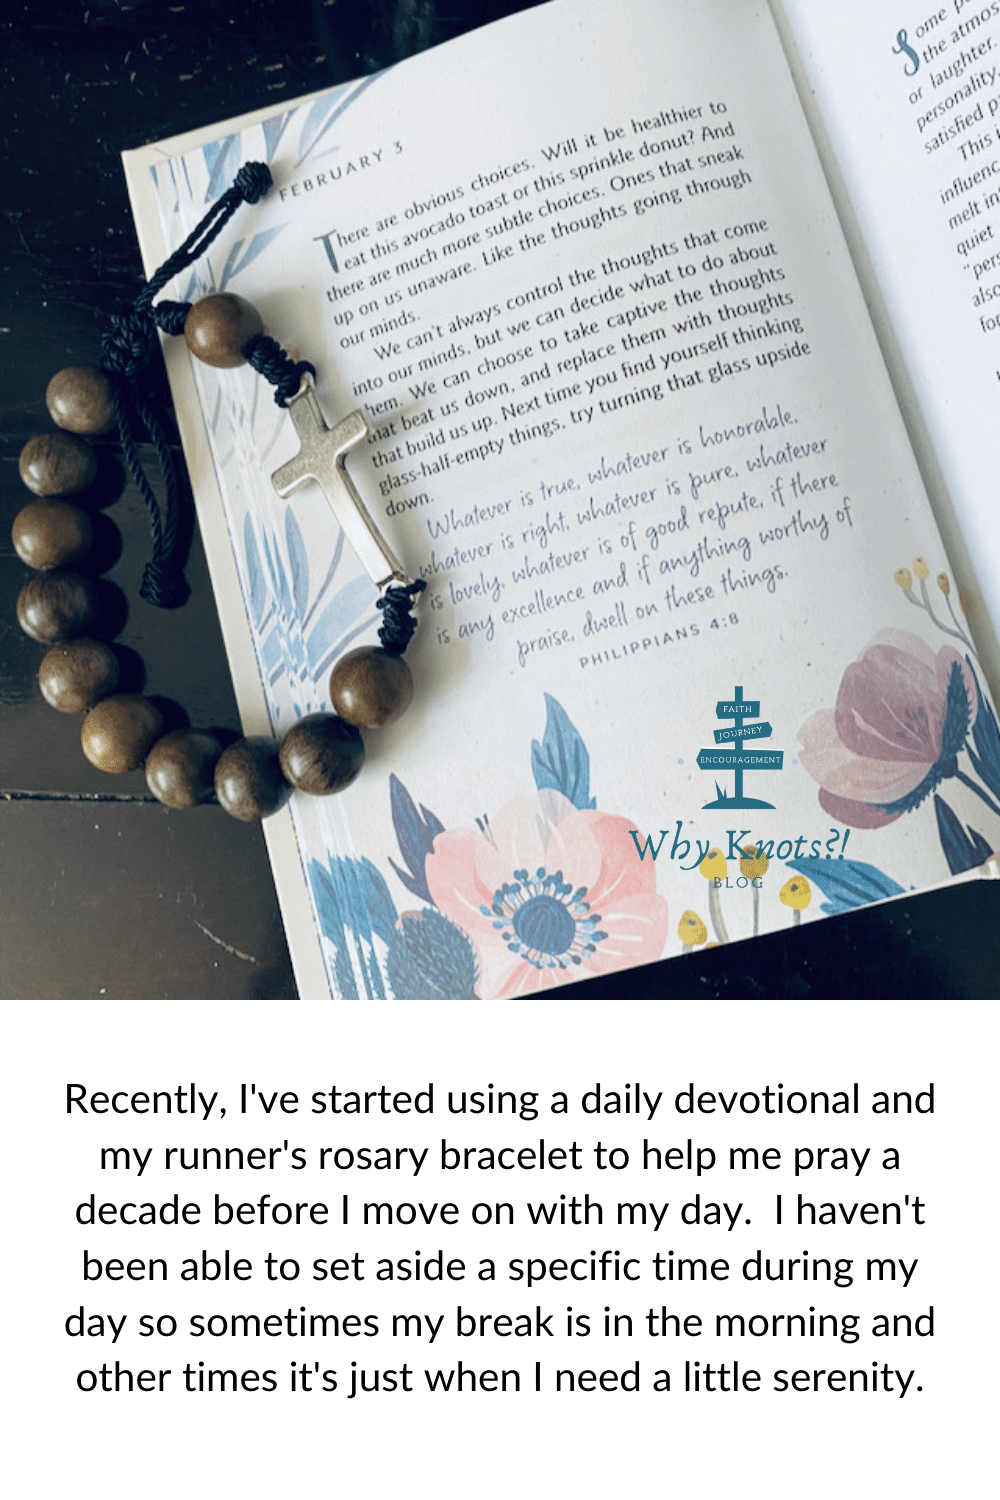 Knots of Grace Runners Rosary Bracelet Why Knots Blog